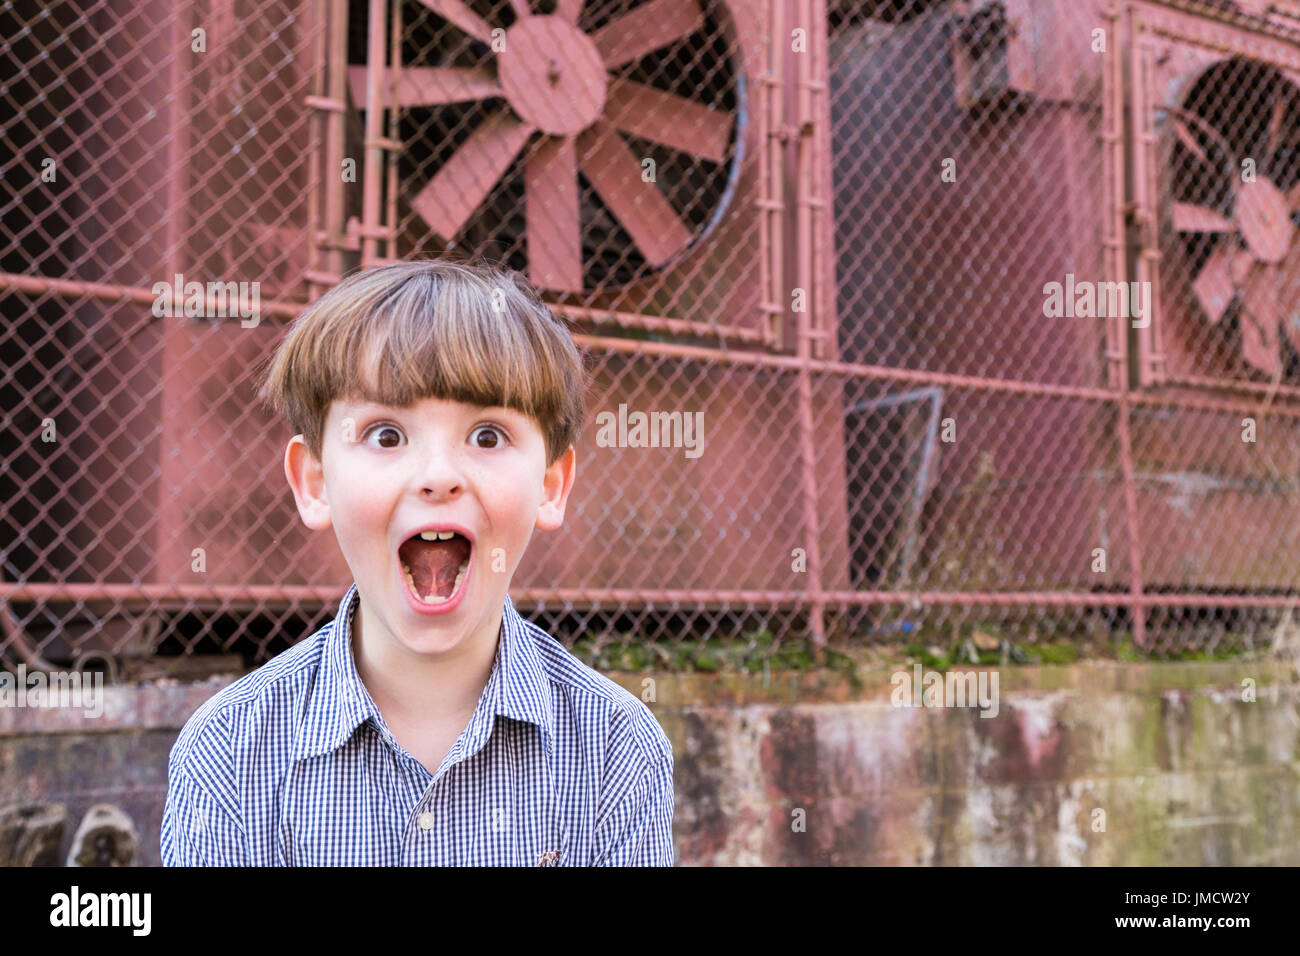 Silly little boy making funny face - Stock Image